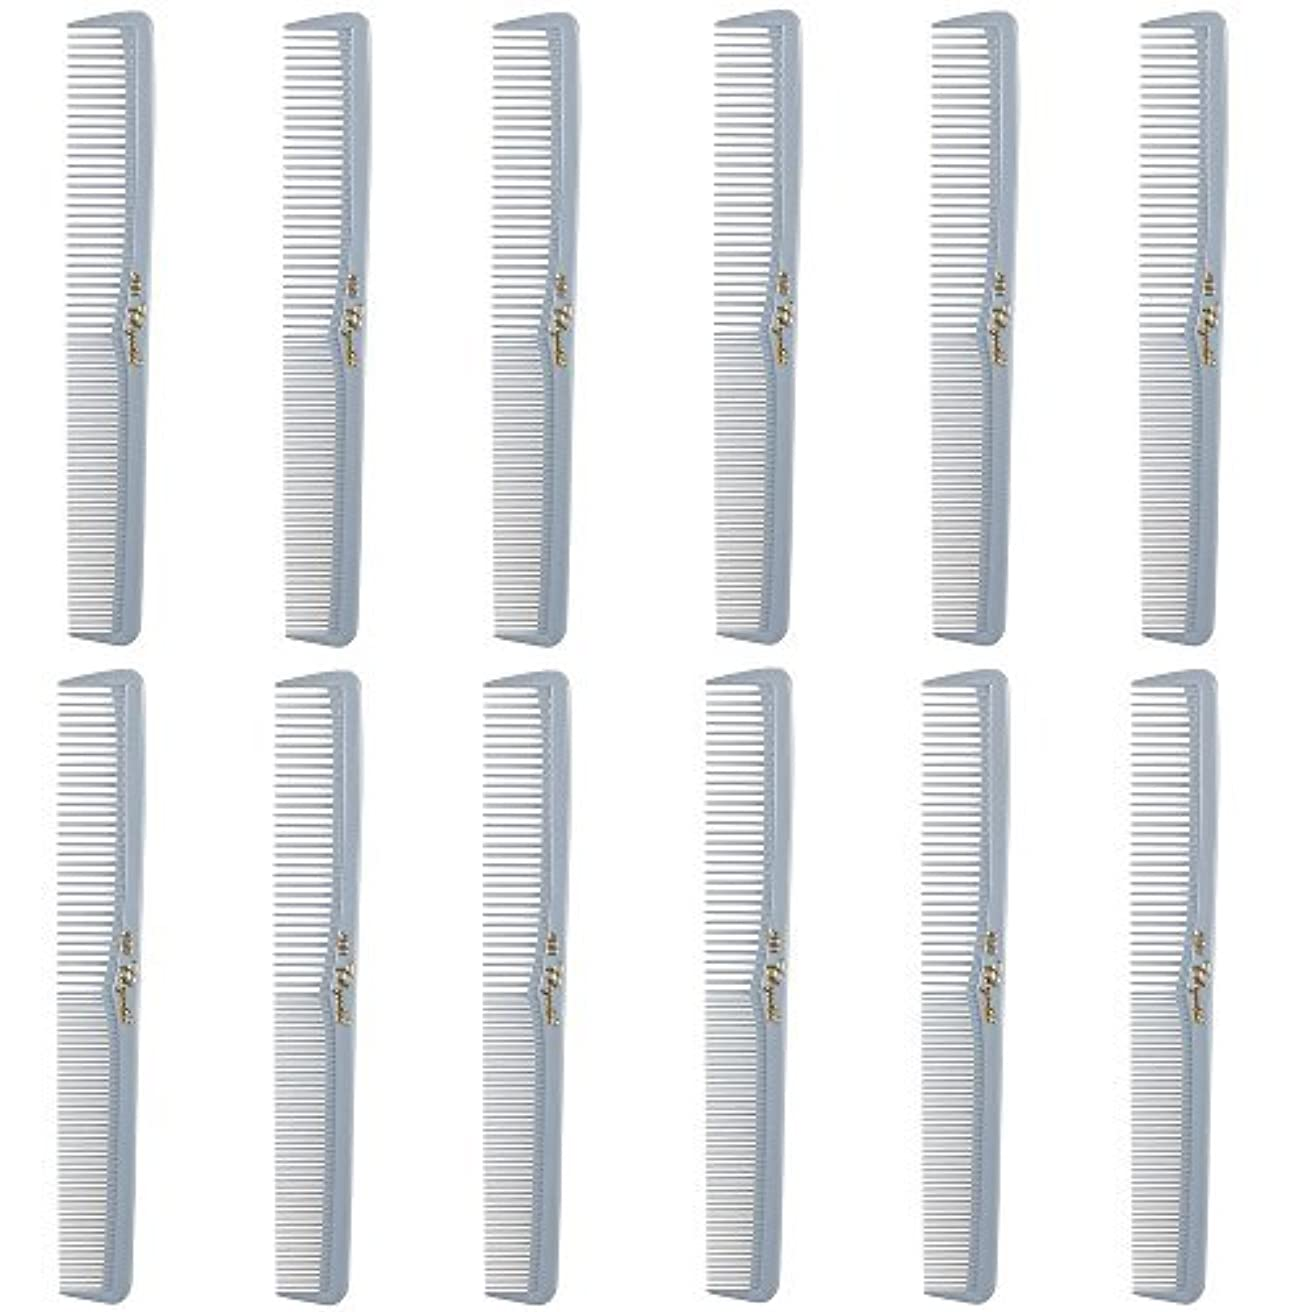 塊売上高ピザBarber Beauty Hair Cleopatra 400 All Purpose Comb (12 Pack) 12 x SB-C400-LGREY [並行輸入品]